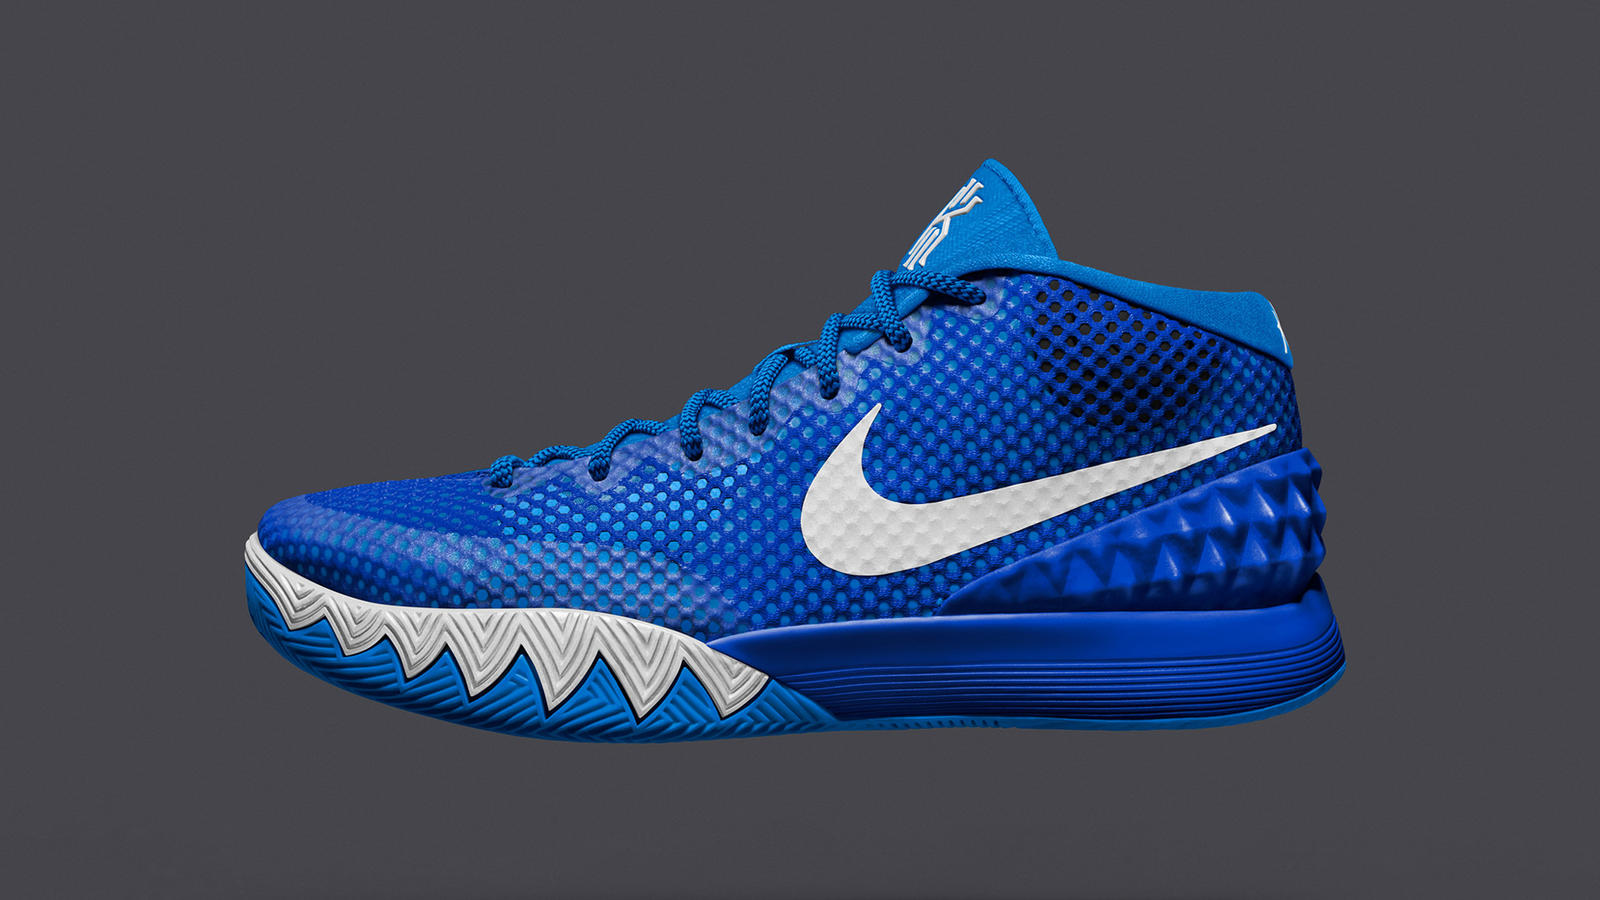 dcd47aa98c1a ... Brooklyn tonight. Sp15 NikeiD Kyrie 1 2058x1570 BlackWhite. KYRIE 1  NIKEiD custom colorway. Sp15 NikeiD Kyrie 1 2058x1570 GameRoyal